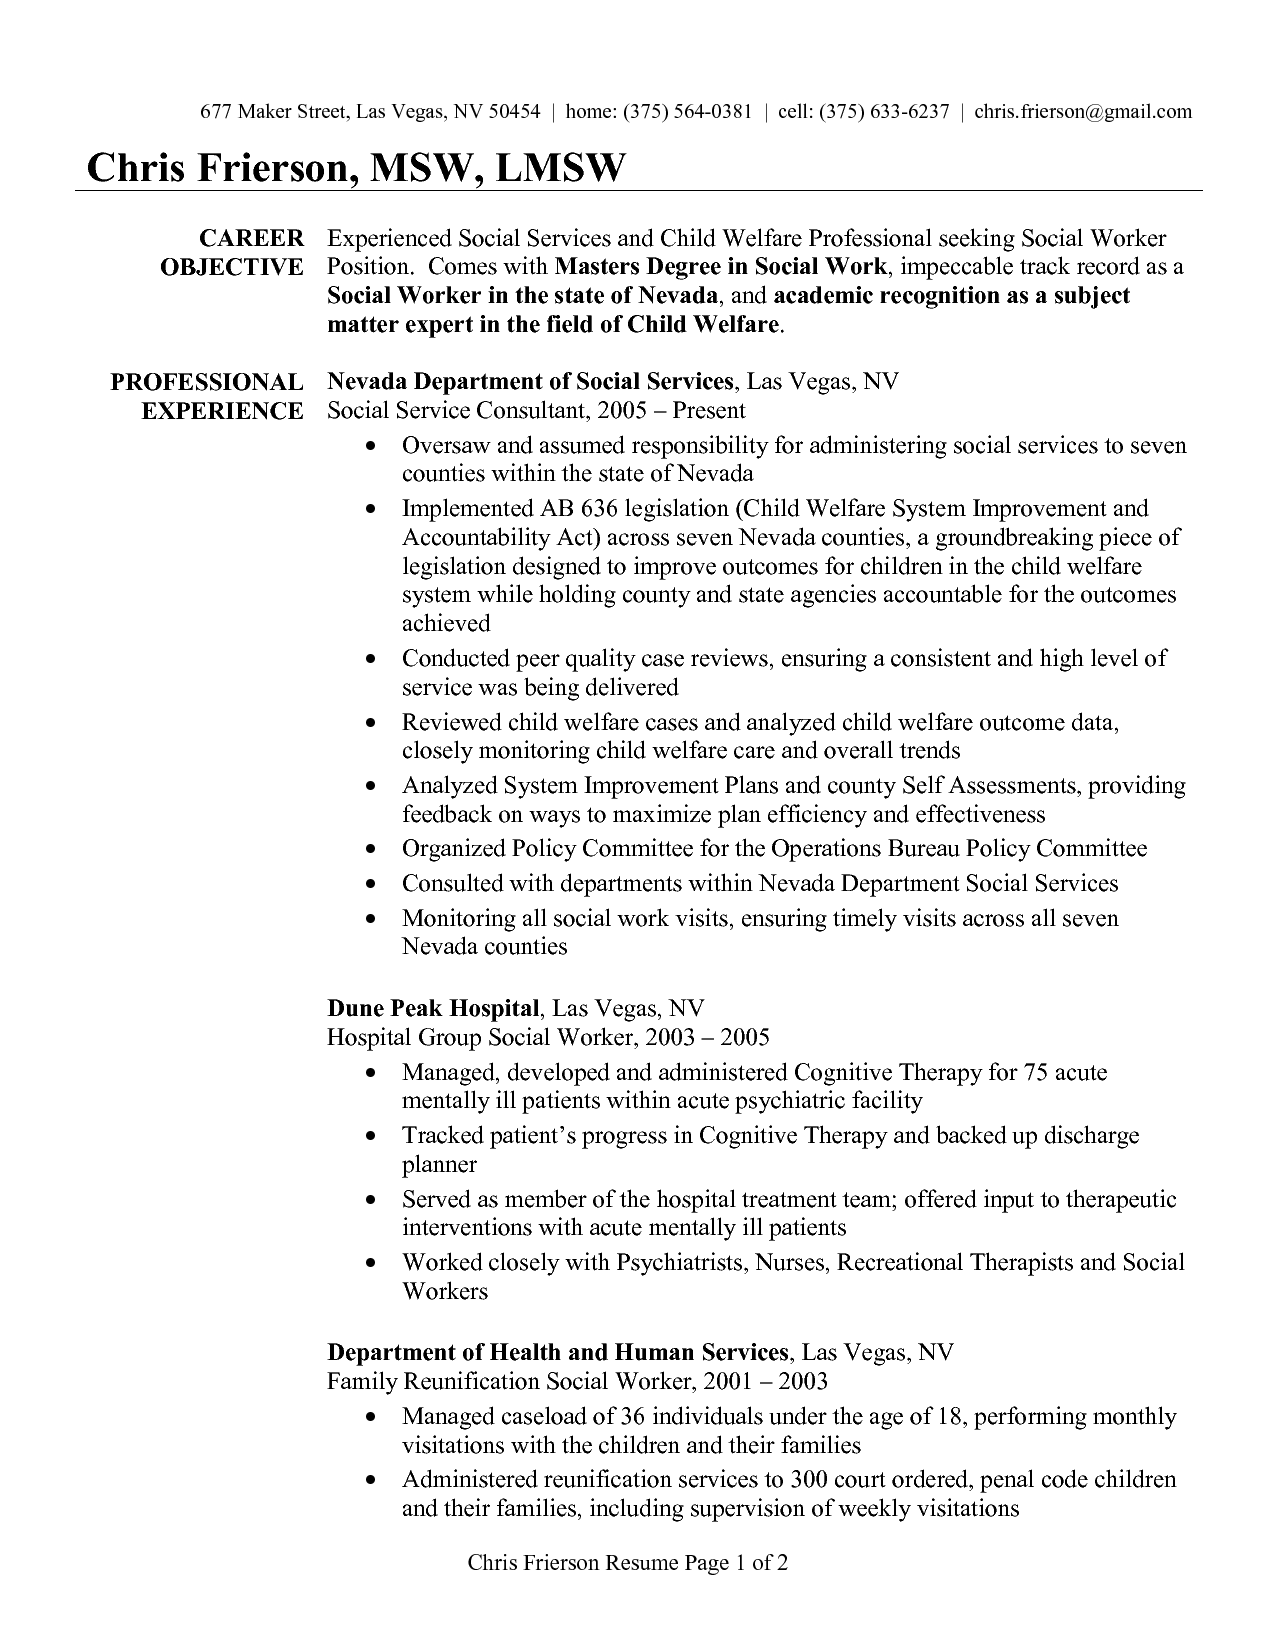 social work career objective - Social Worker Resume